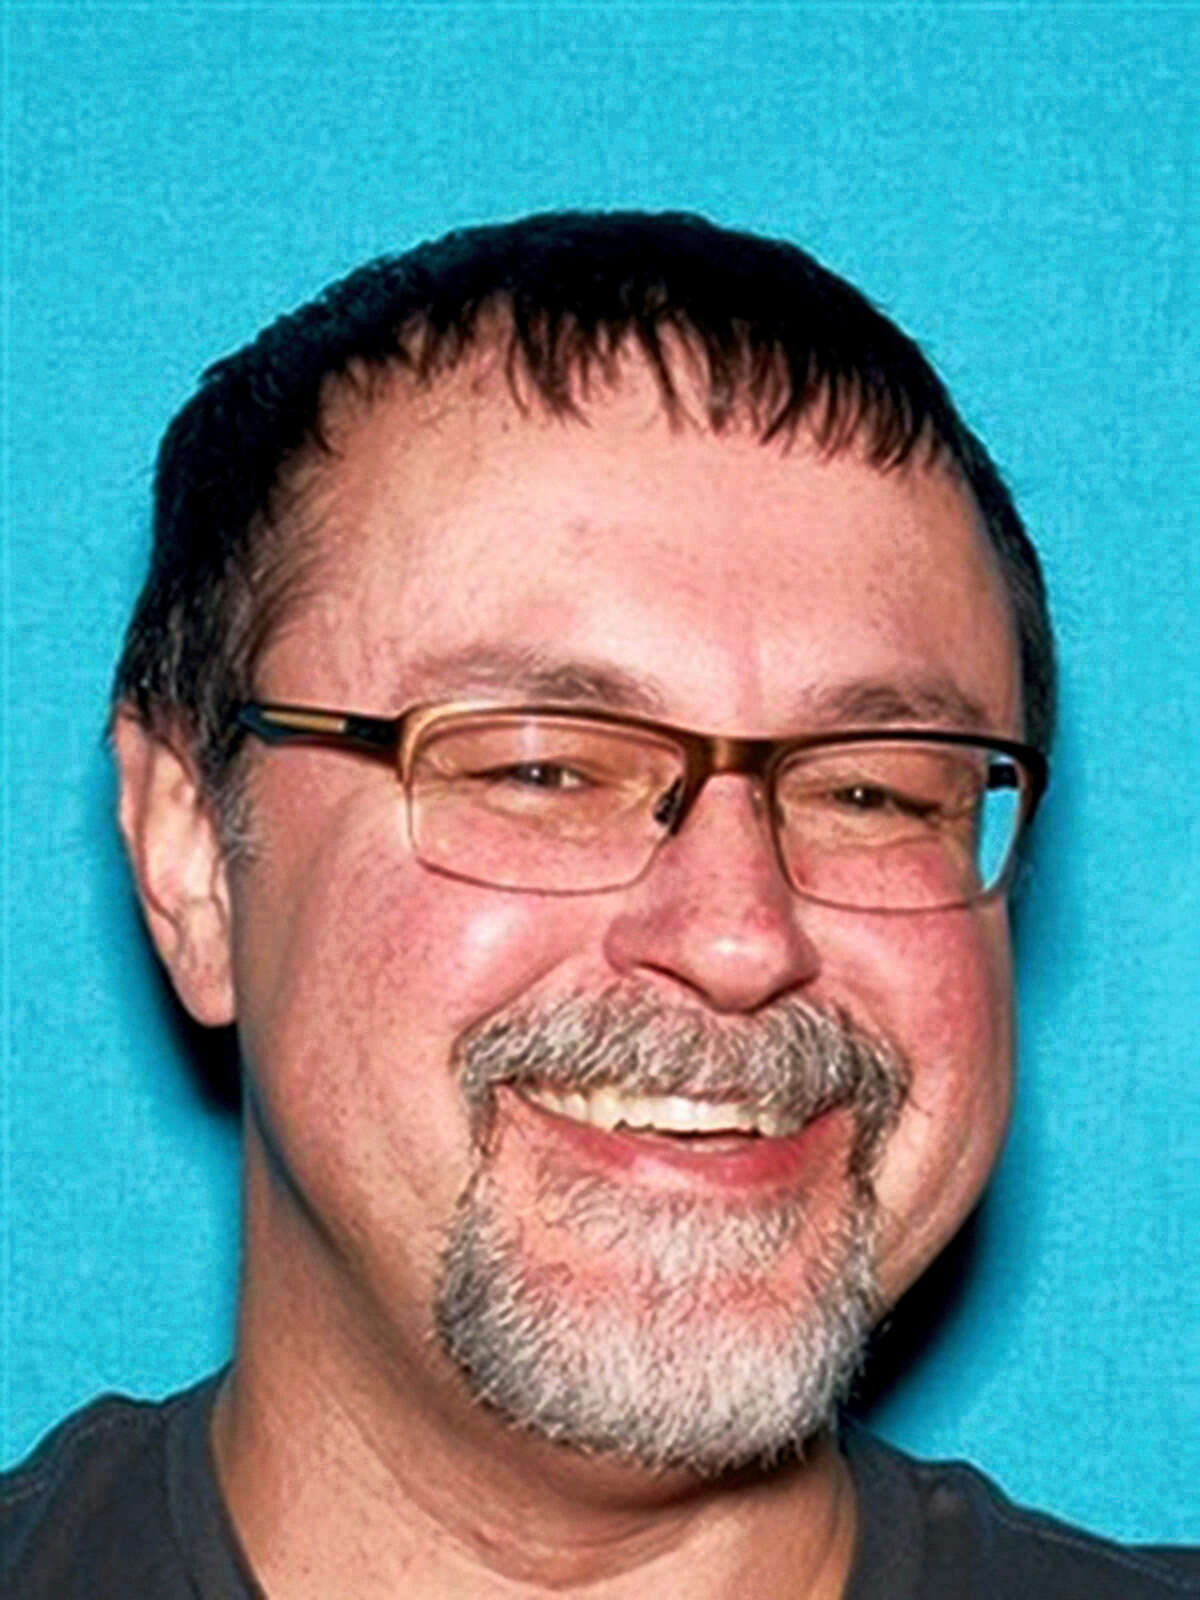 In this undated file photo released by the Tennessee Bureau of Investigations shows Tad Cummins in Tennessee. Authorities said a 15-year-old Tennessee girl who disappeared with Cummins, who was her teacher, last month has been found safe in California and the teacher has been arrested.